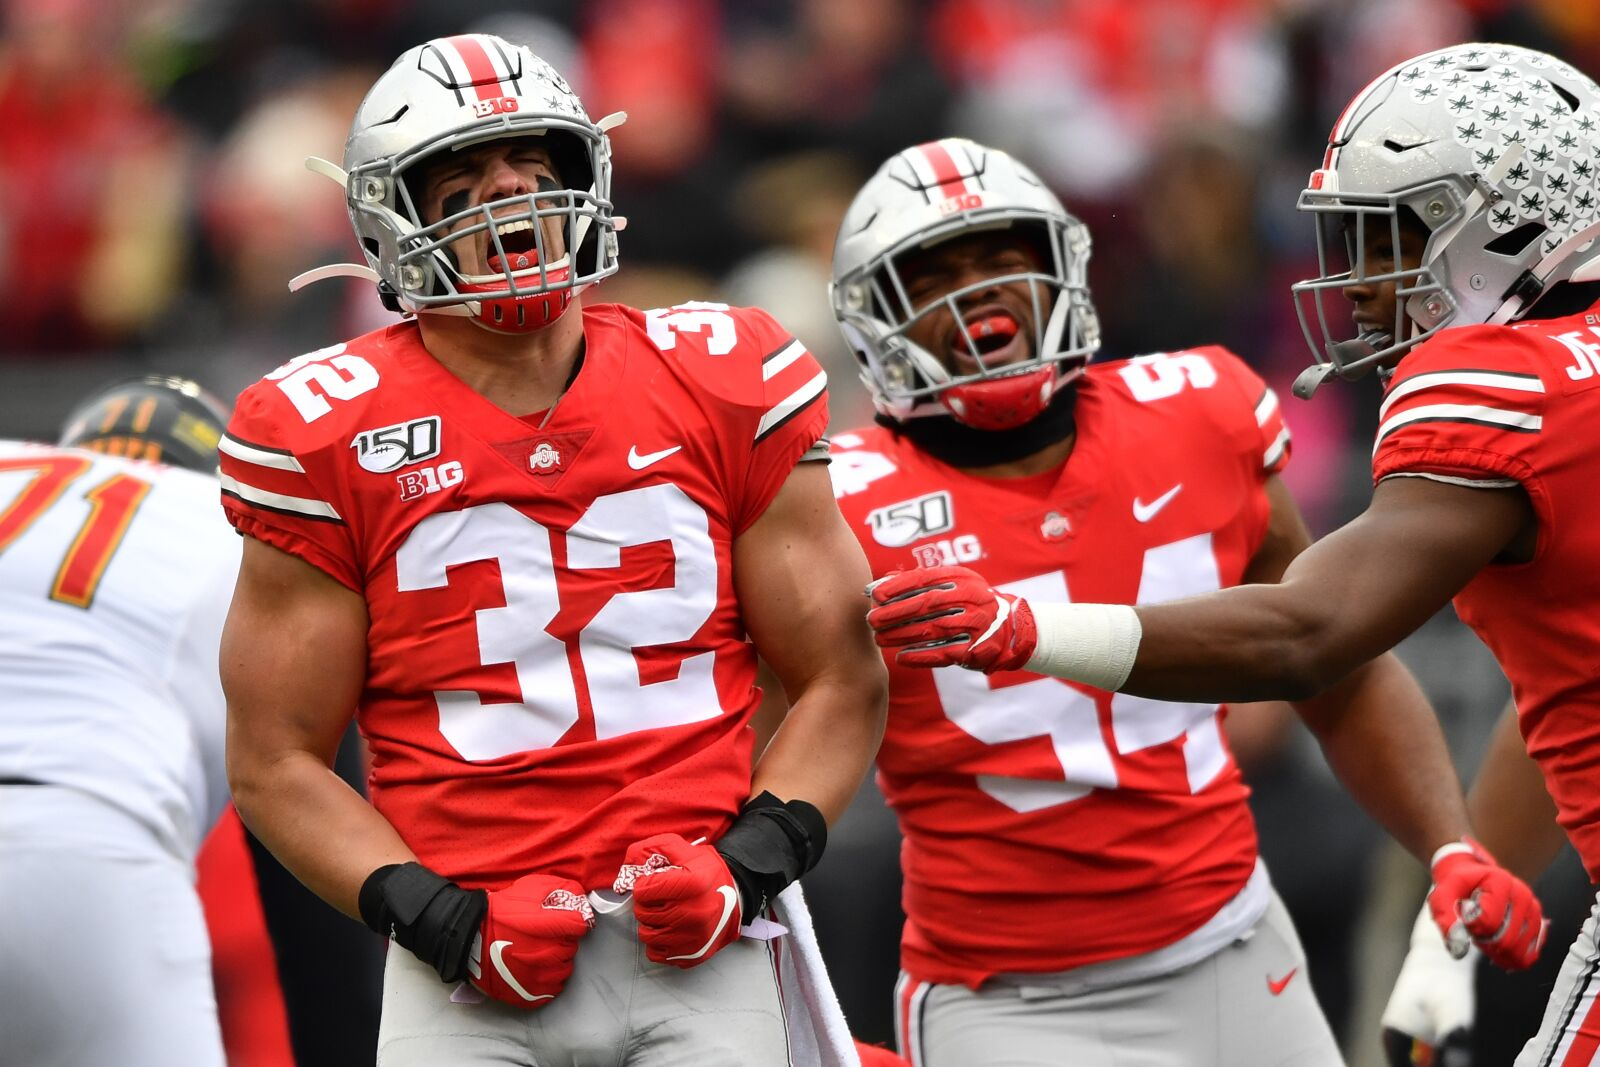 Ohio State is clearly the best football team in the state